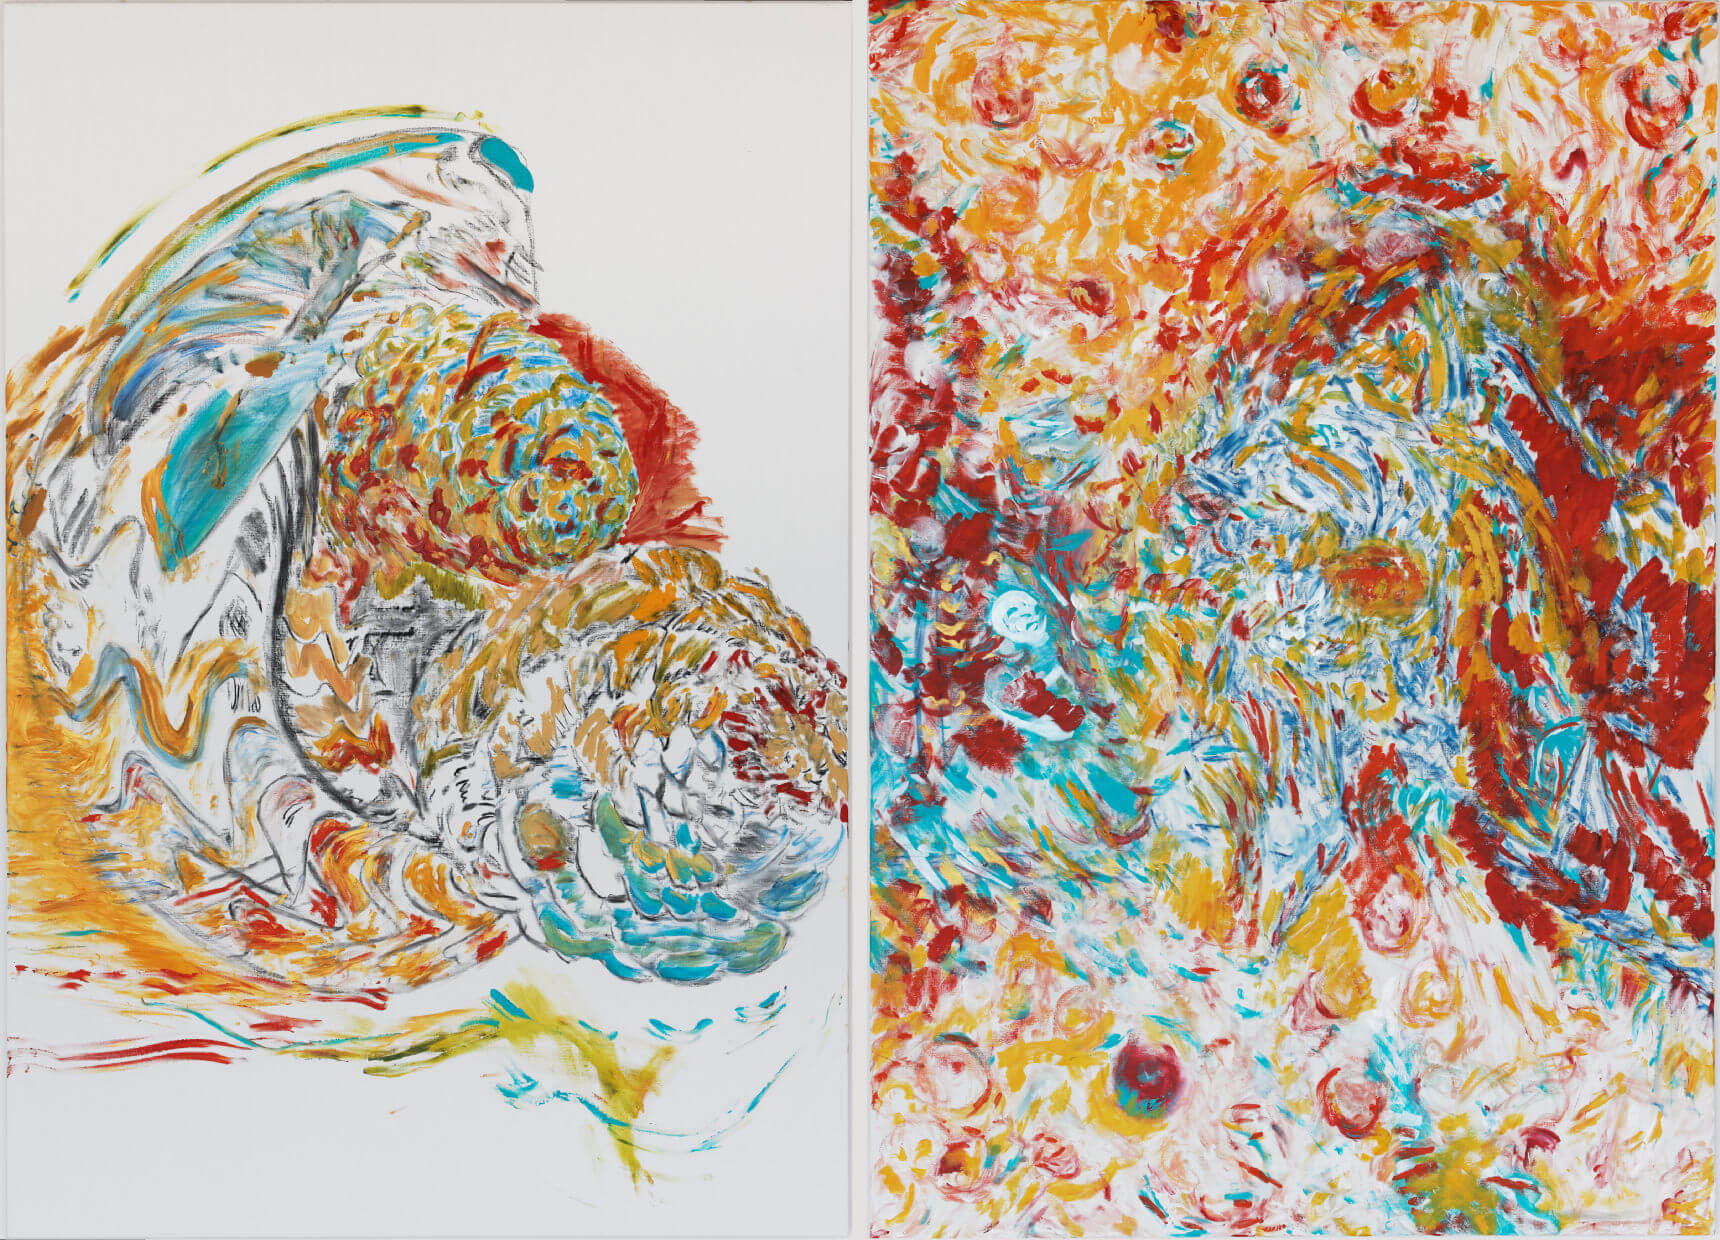 Fossile vif en sculpture (acrylic and mixed media, 260 x 163 cm - diptych - 2014)